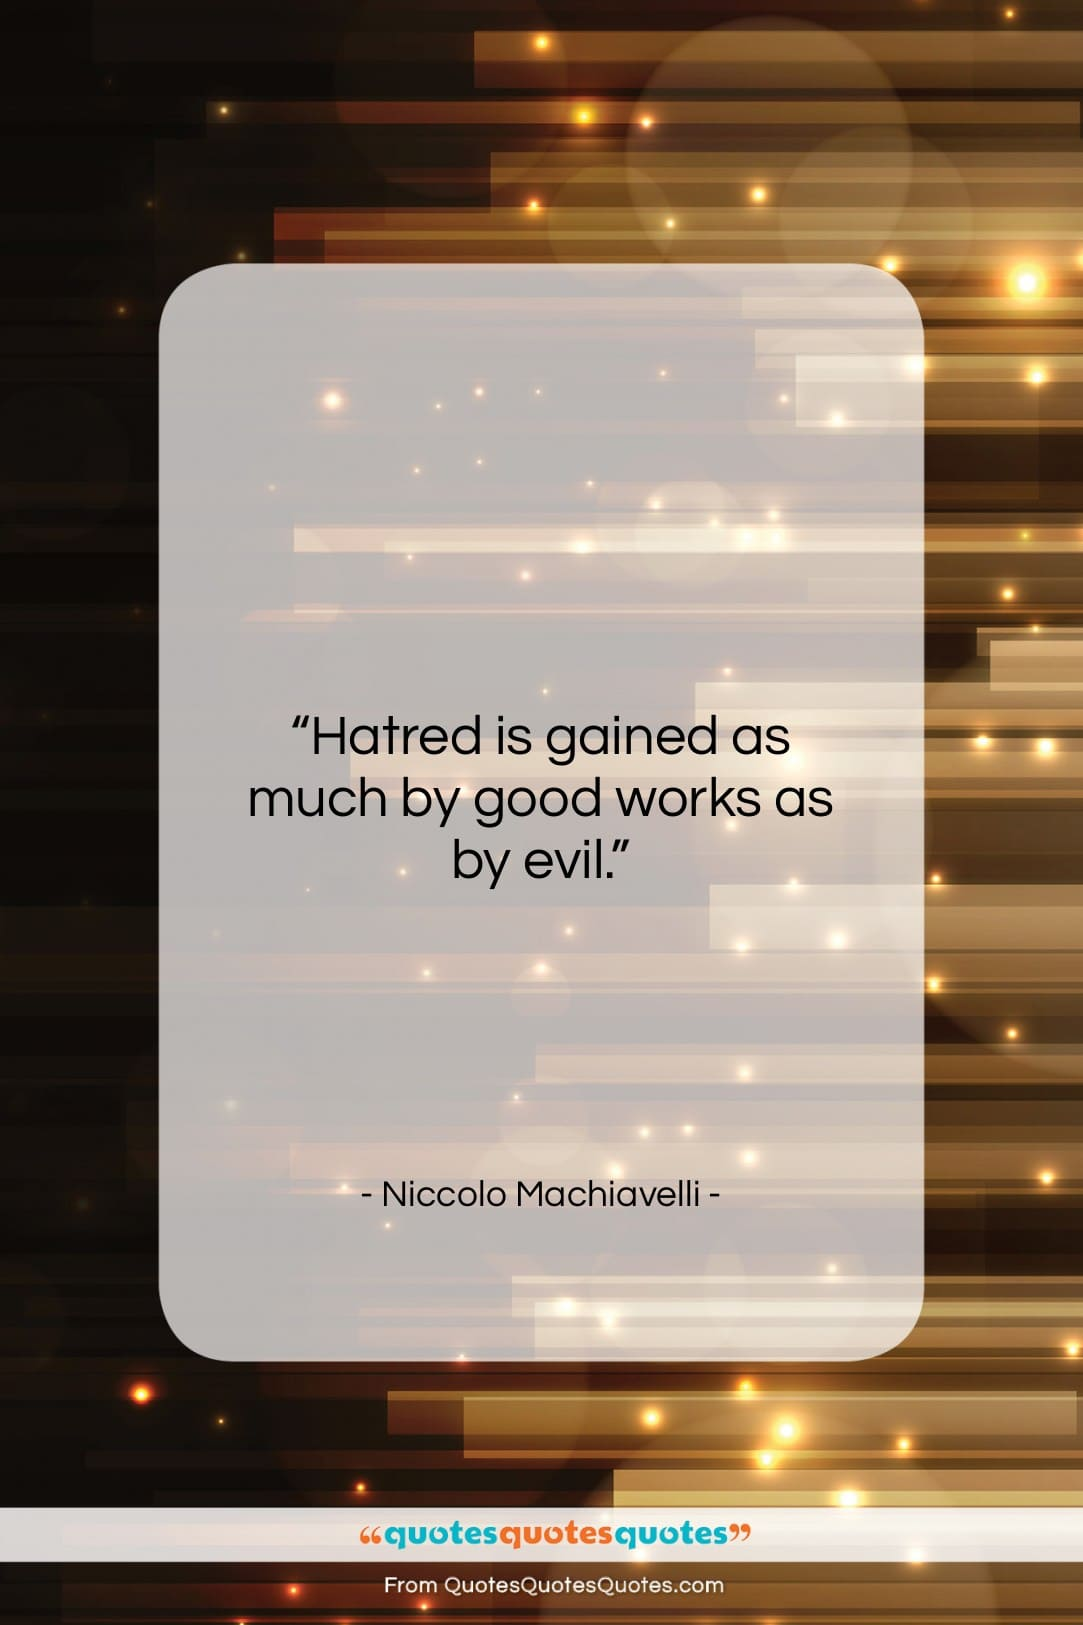 """Niccolo Machiavelli quote: """"Hatred is gained as much by good…""""- at QuotesQuotesQuotes.com"""